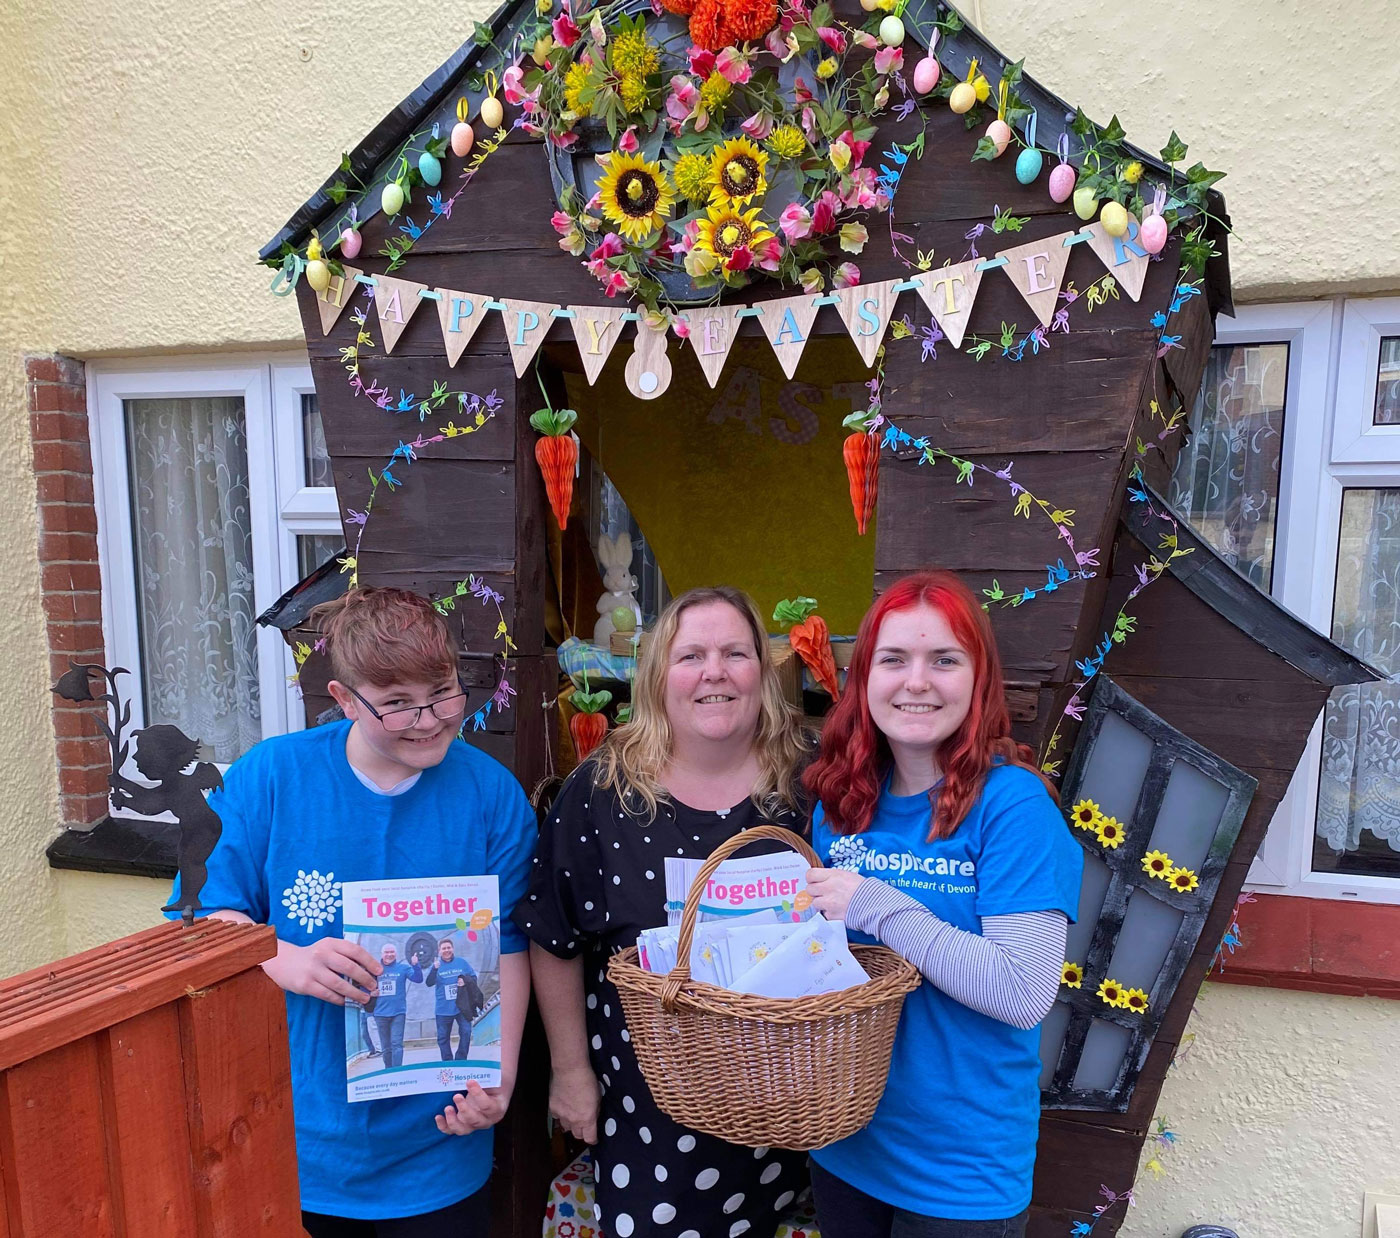 Hospiscare Heroes – From baking fundraisers to beer donations